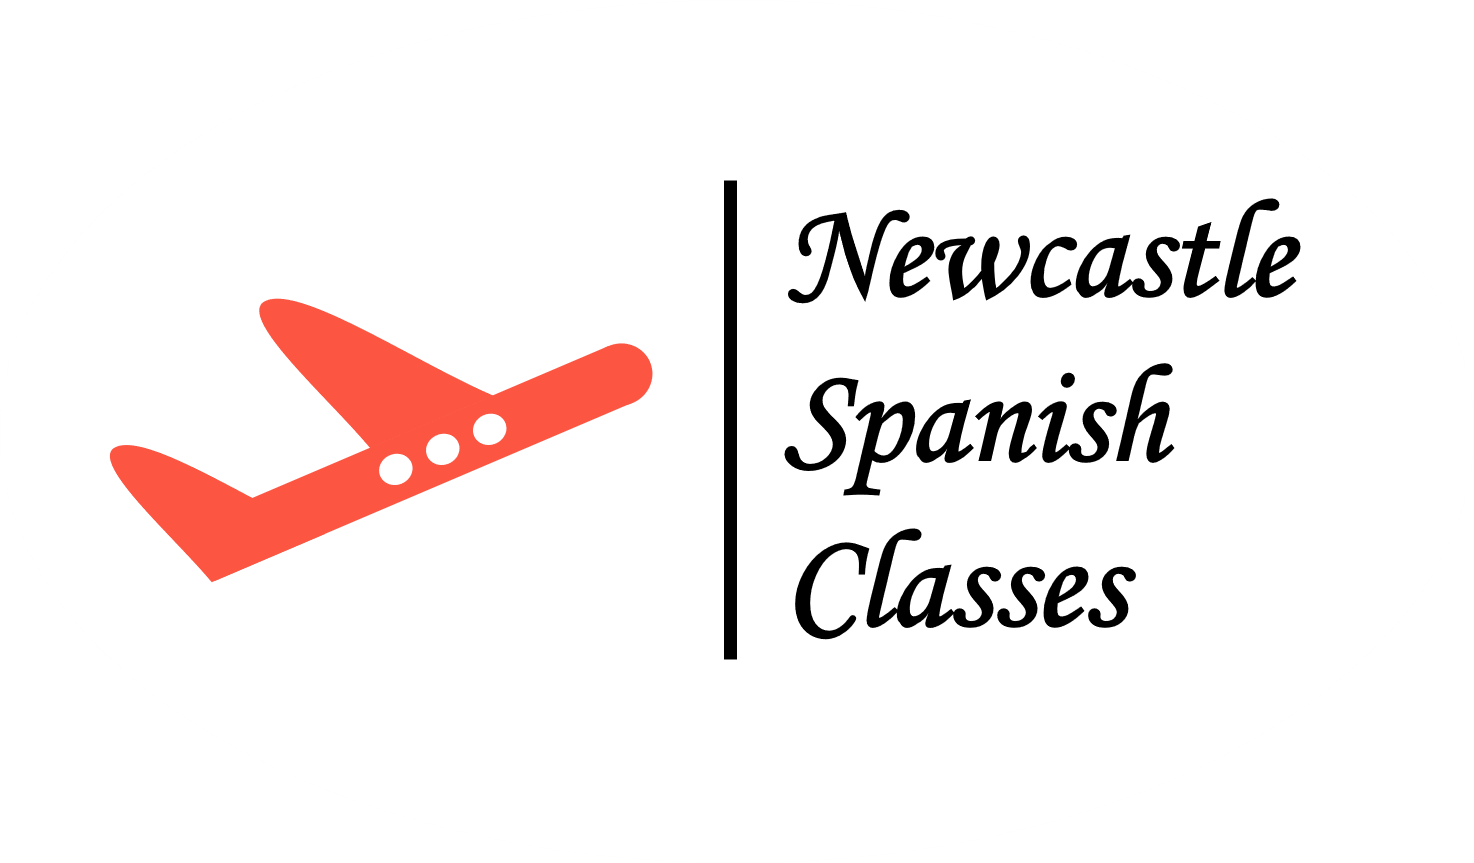 Newcastle Spanish Classes (adult)